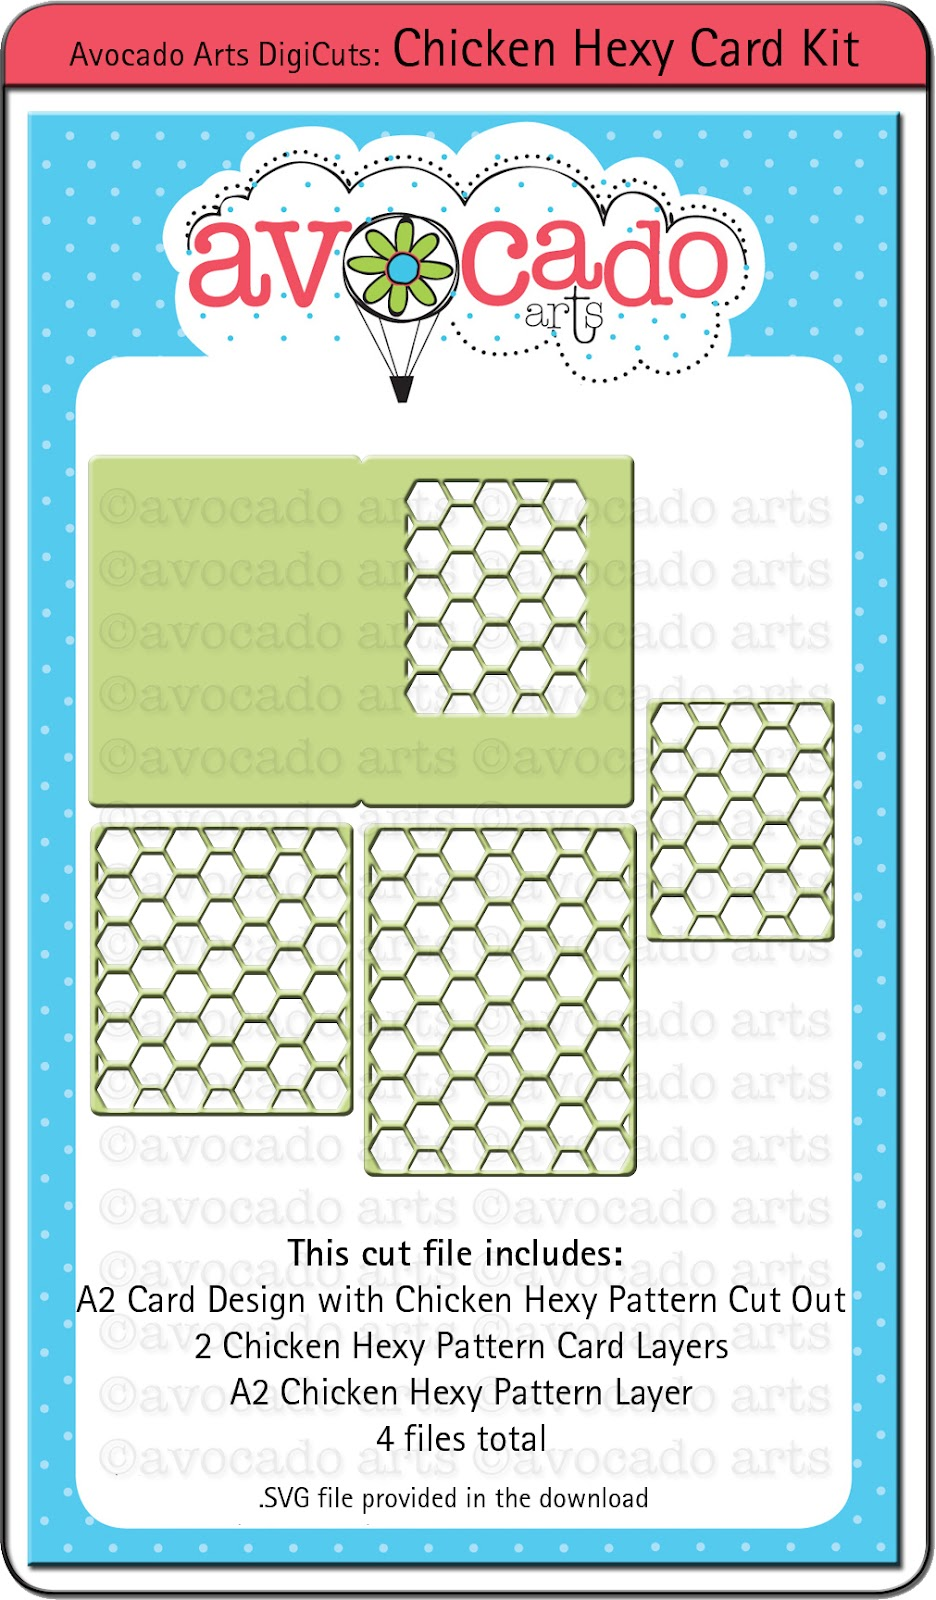 File Check Out Card avocado arts: brand new products for you! check it out!